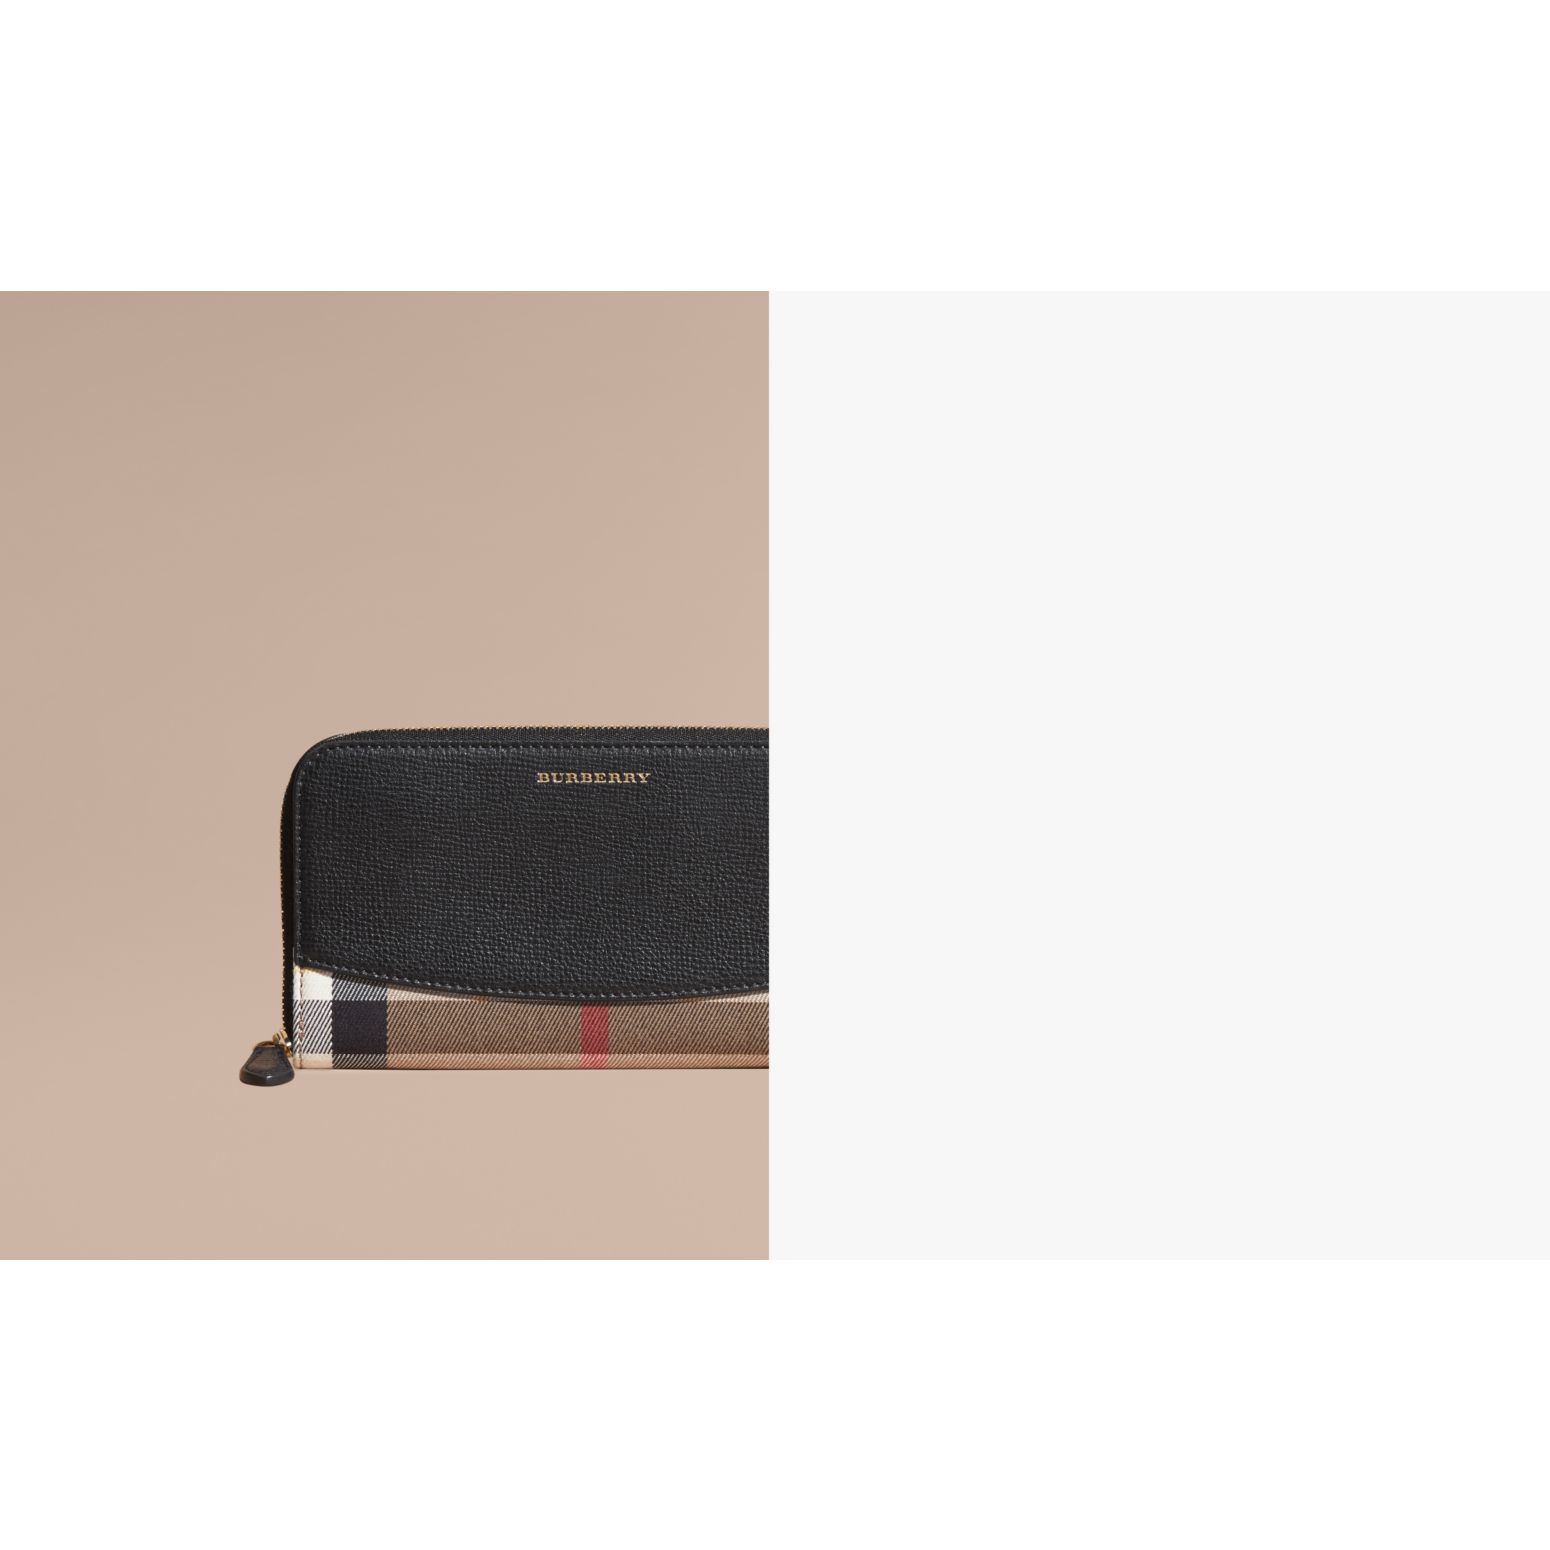 House Check and Leather Ziparound Wallet in Black - Women | Burberry Canada - gallery image 2